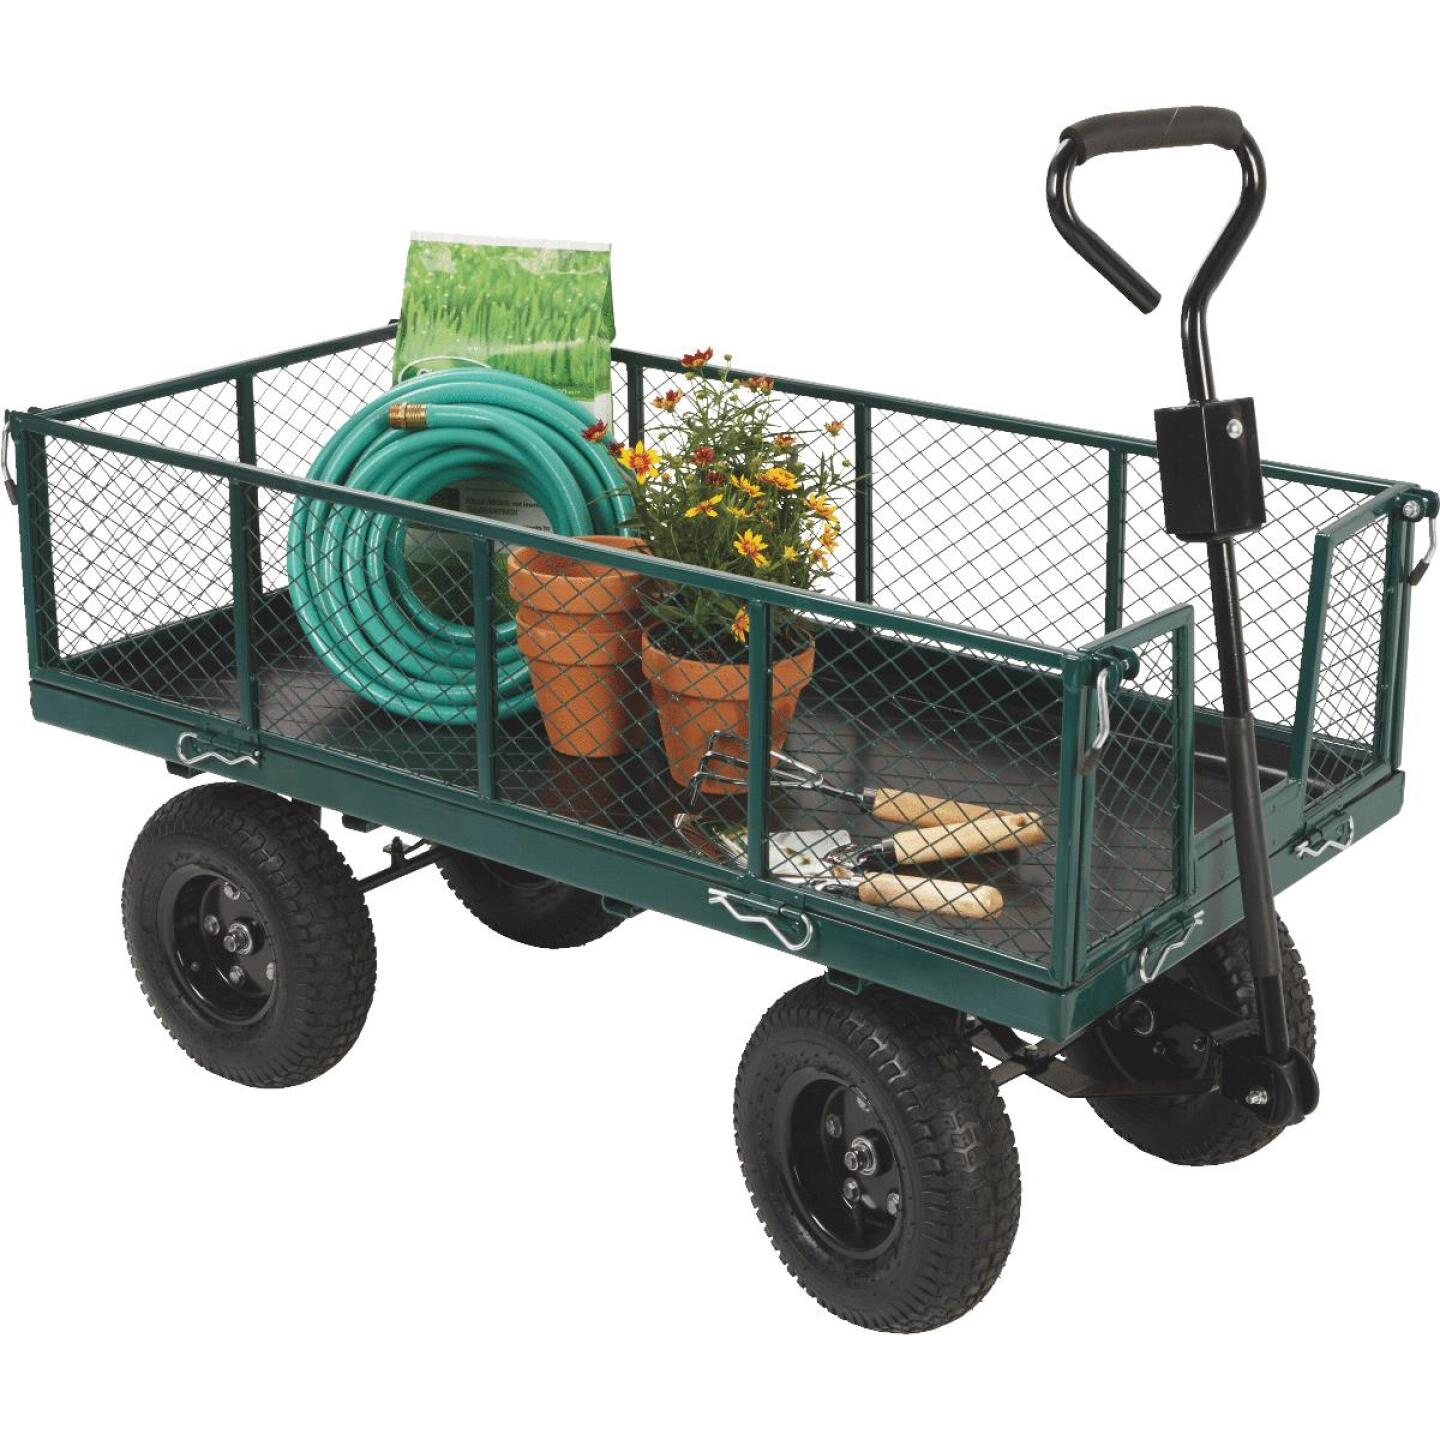 Best Garden 1000 Lb. Steel Garden Cart with Collapsible Sides Image 7